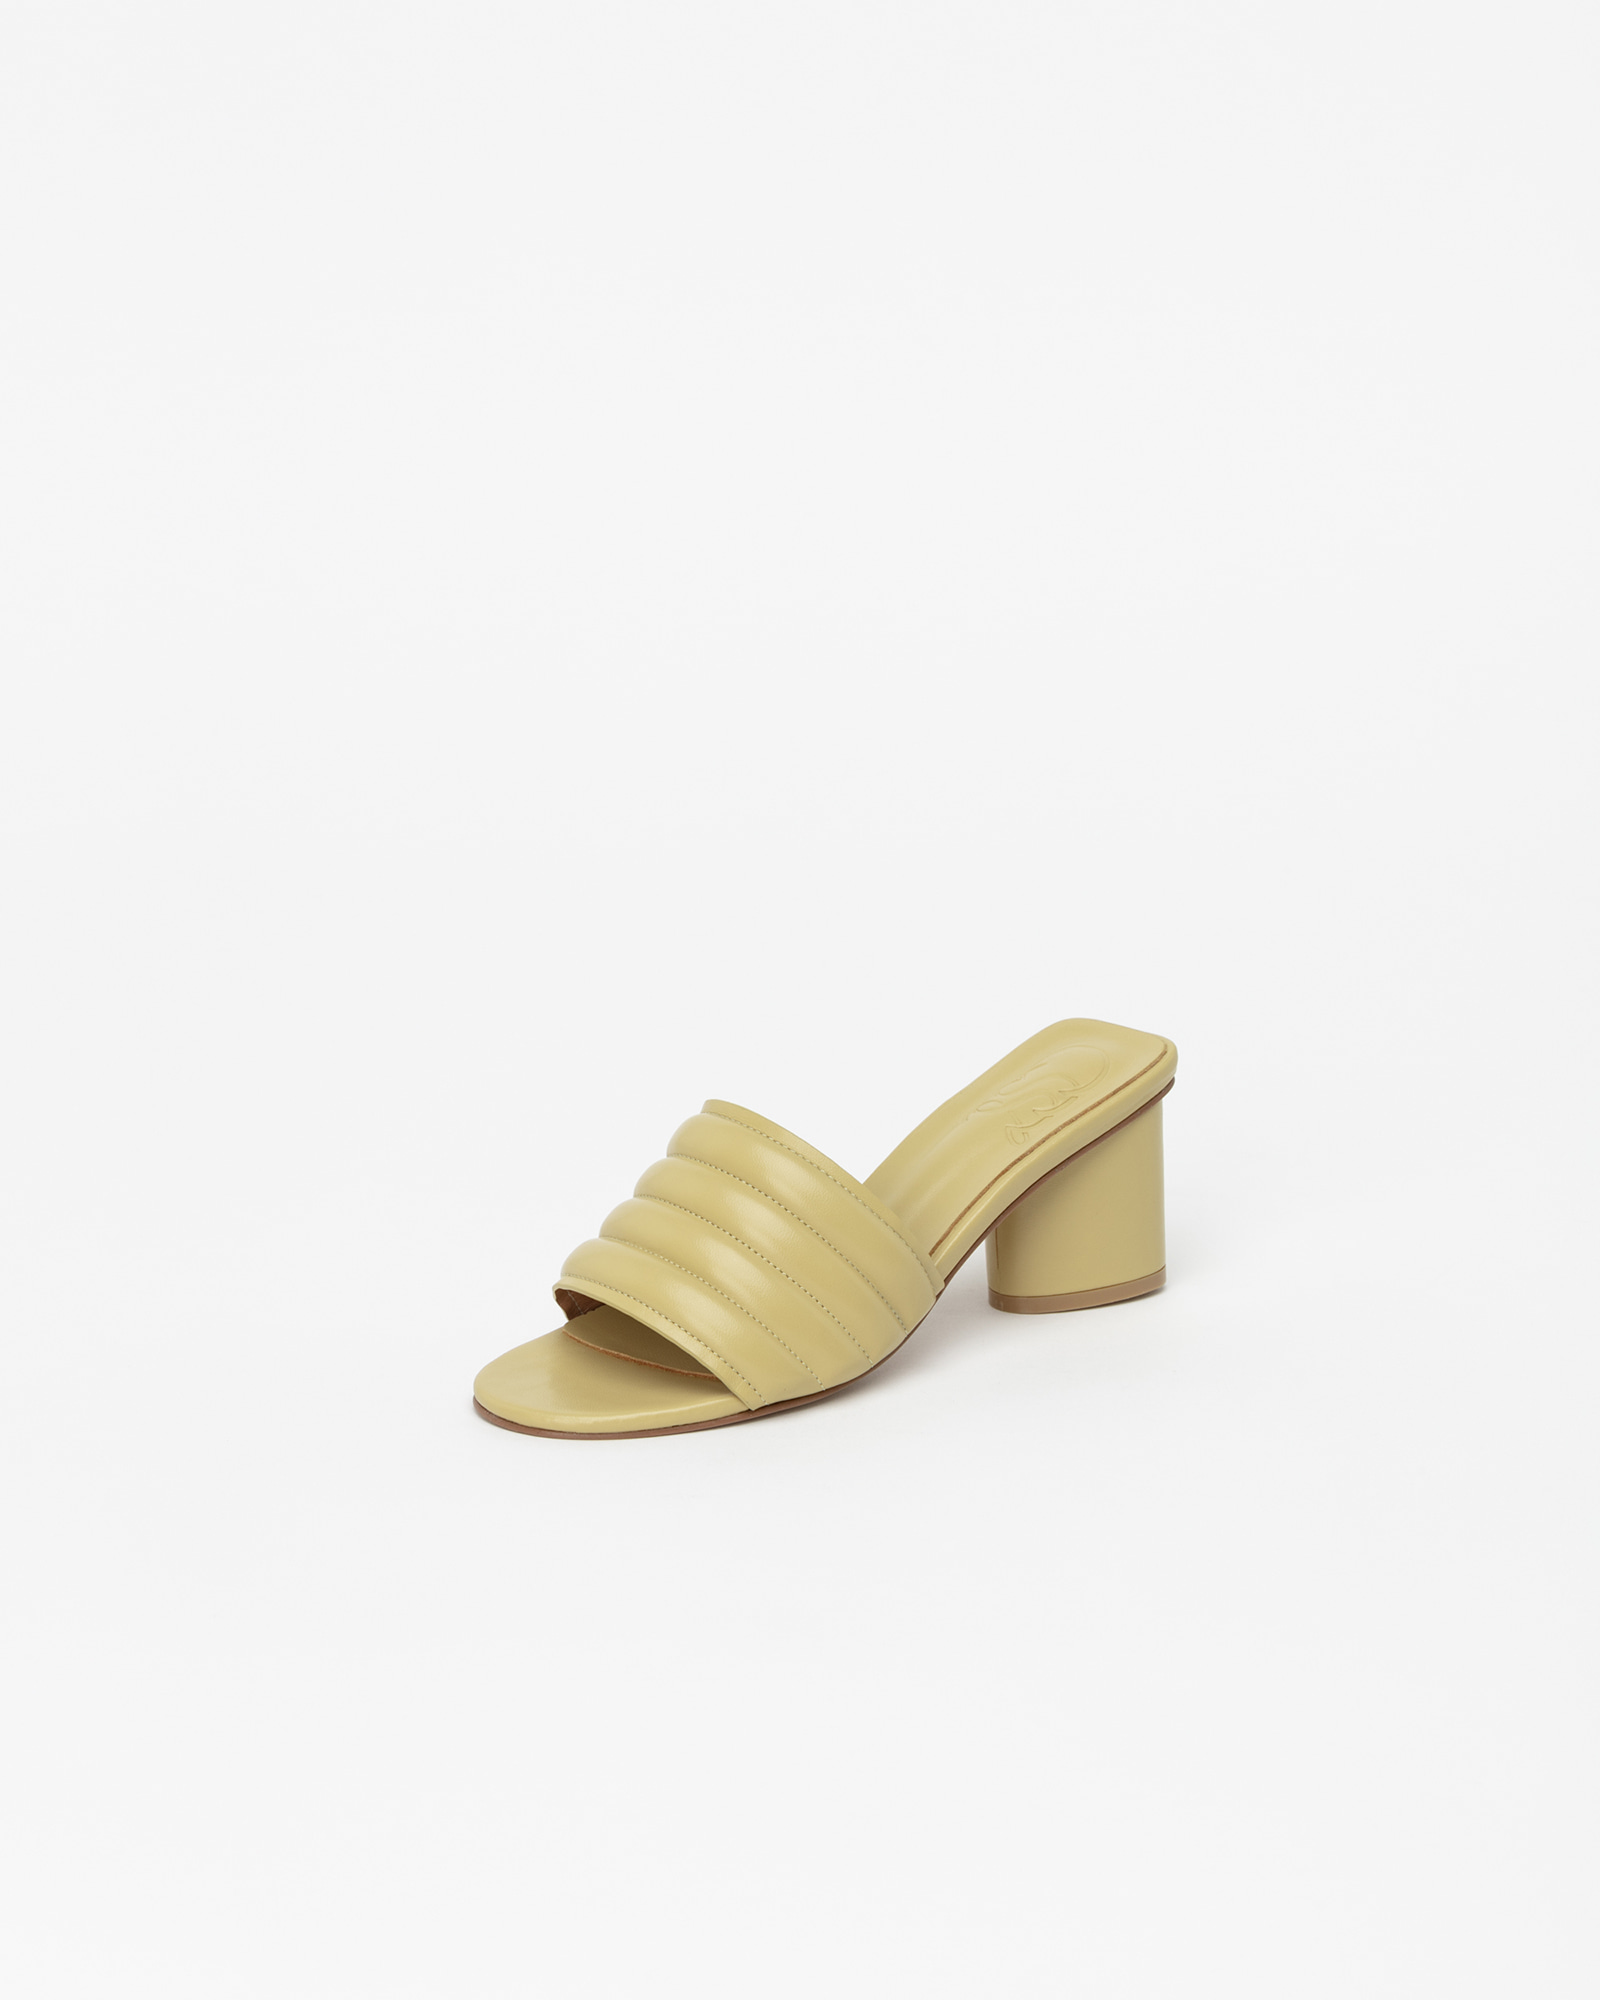 Alia Padded Mules in Linelight Yellow